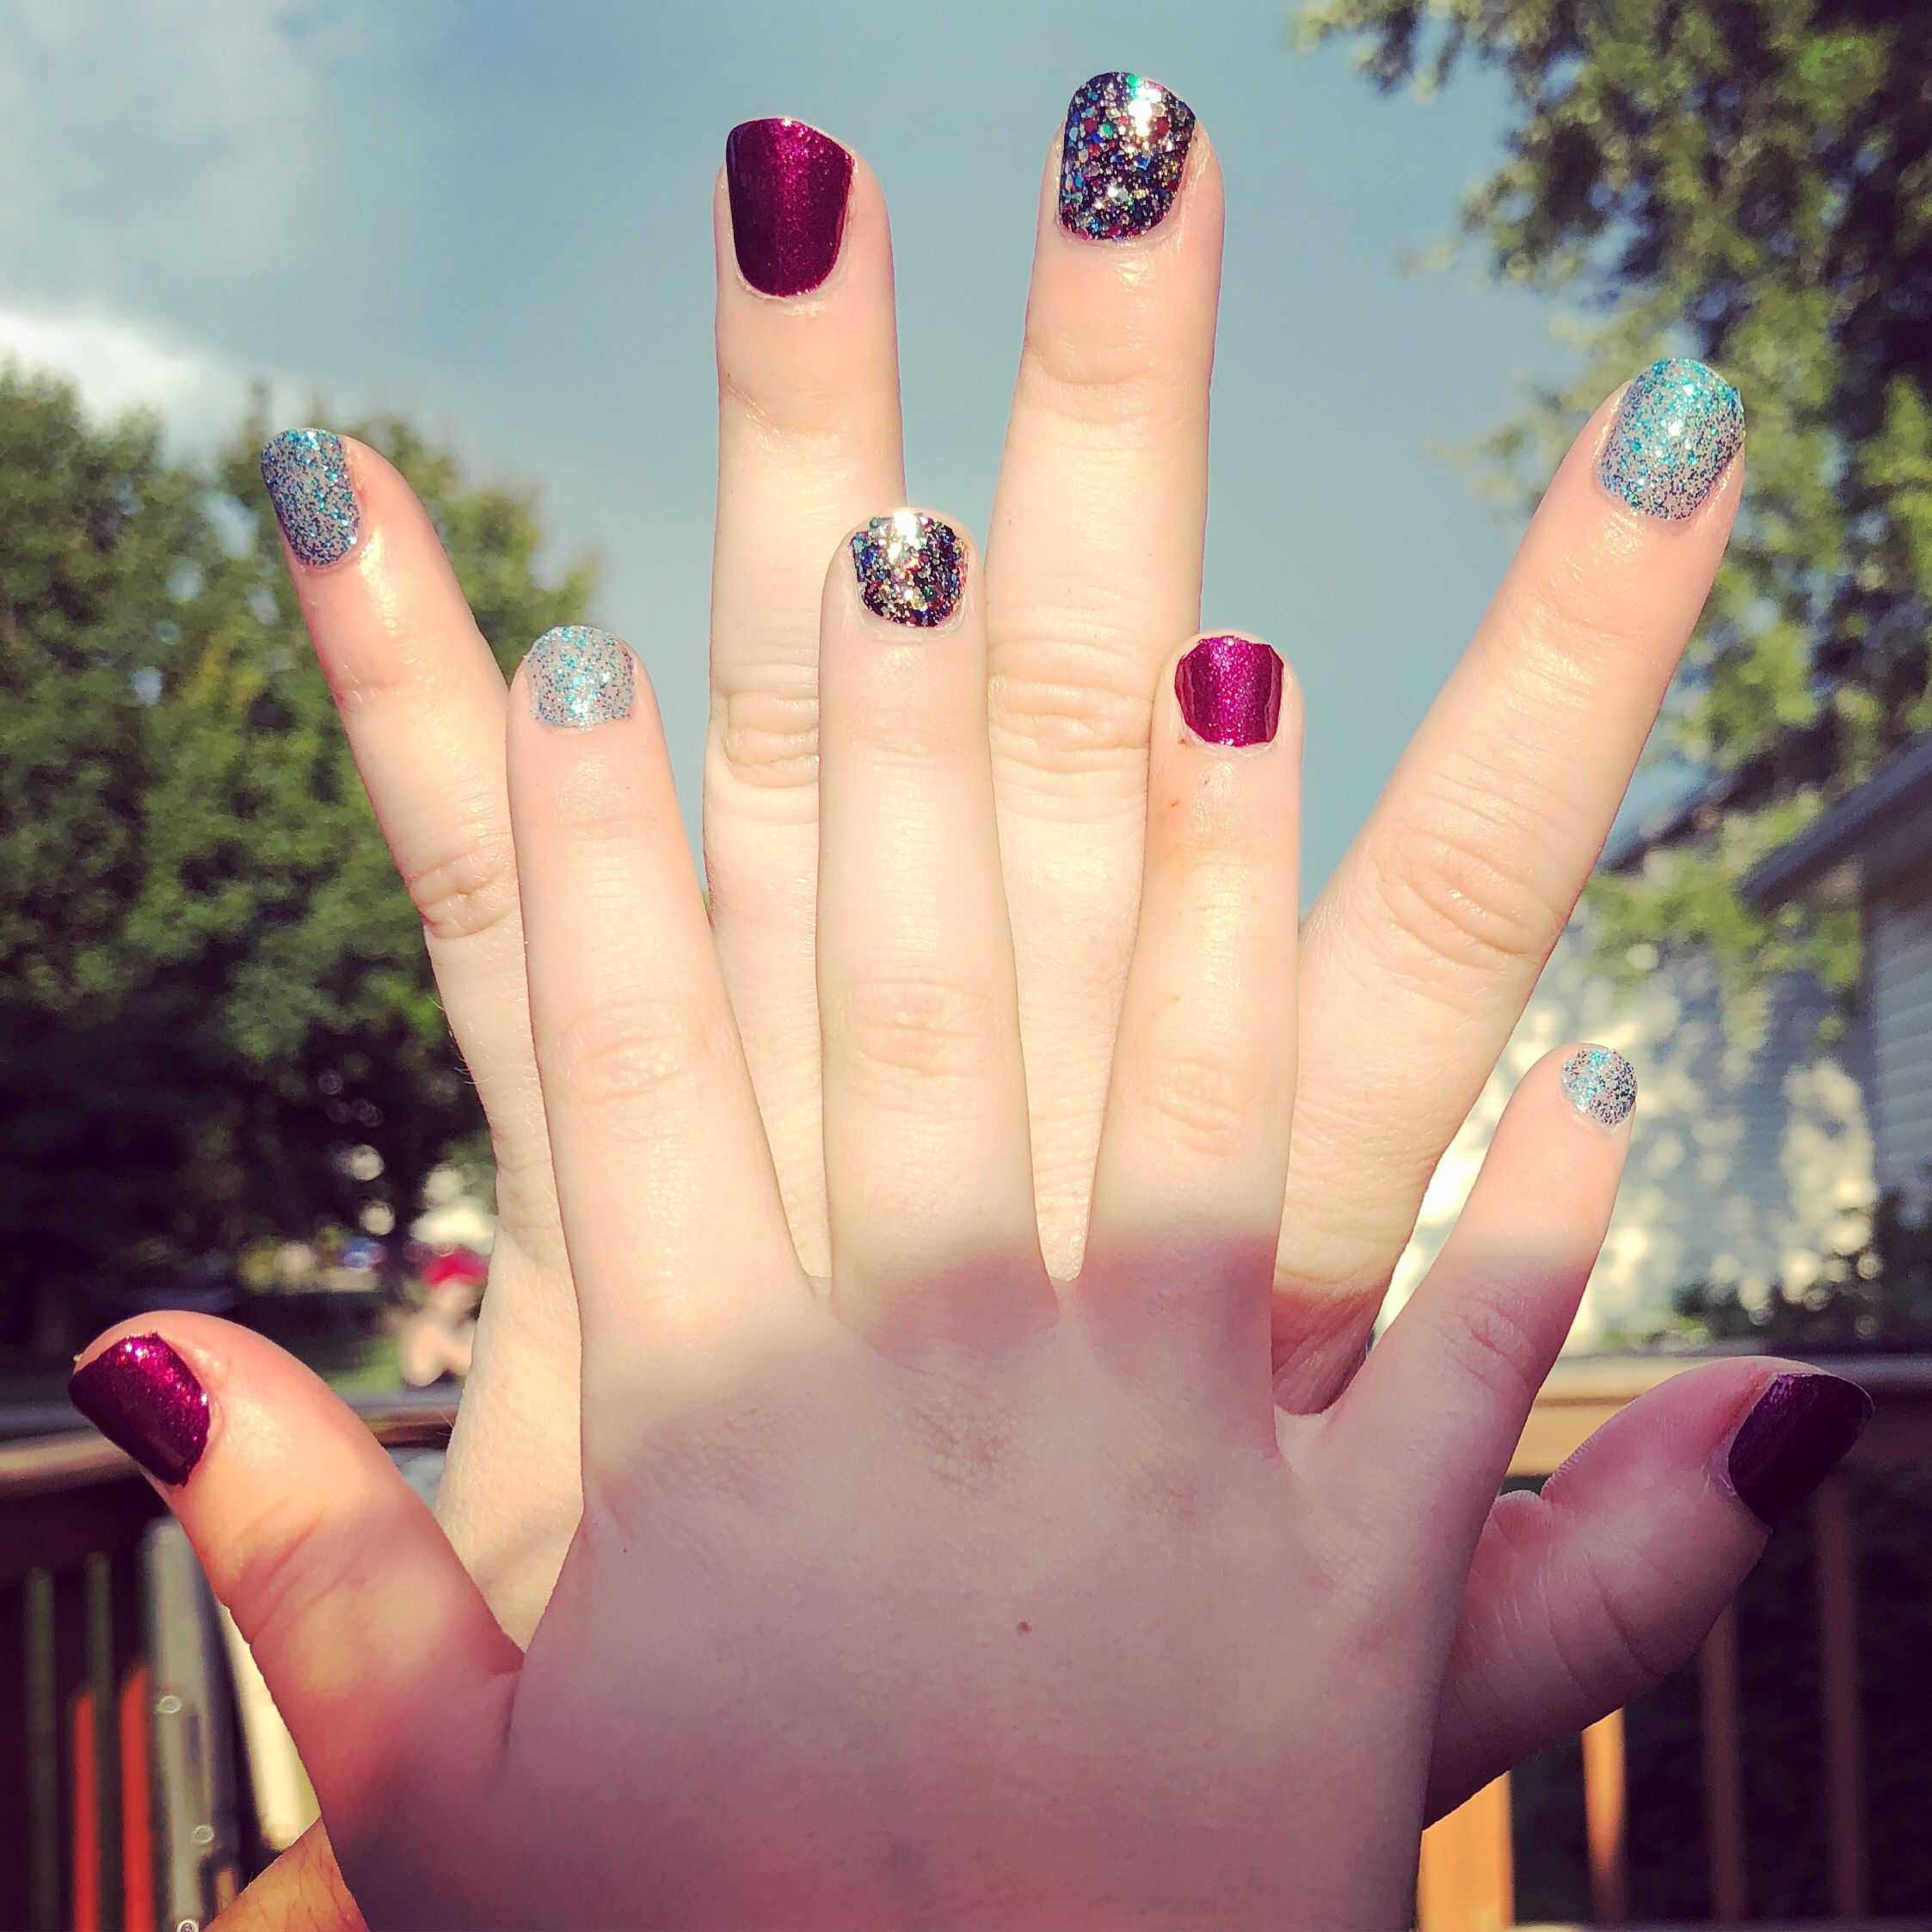 Instant Manicure For Less Than The Salon Plus I Don T Have To